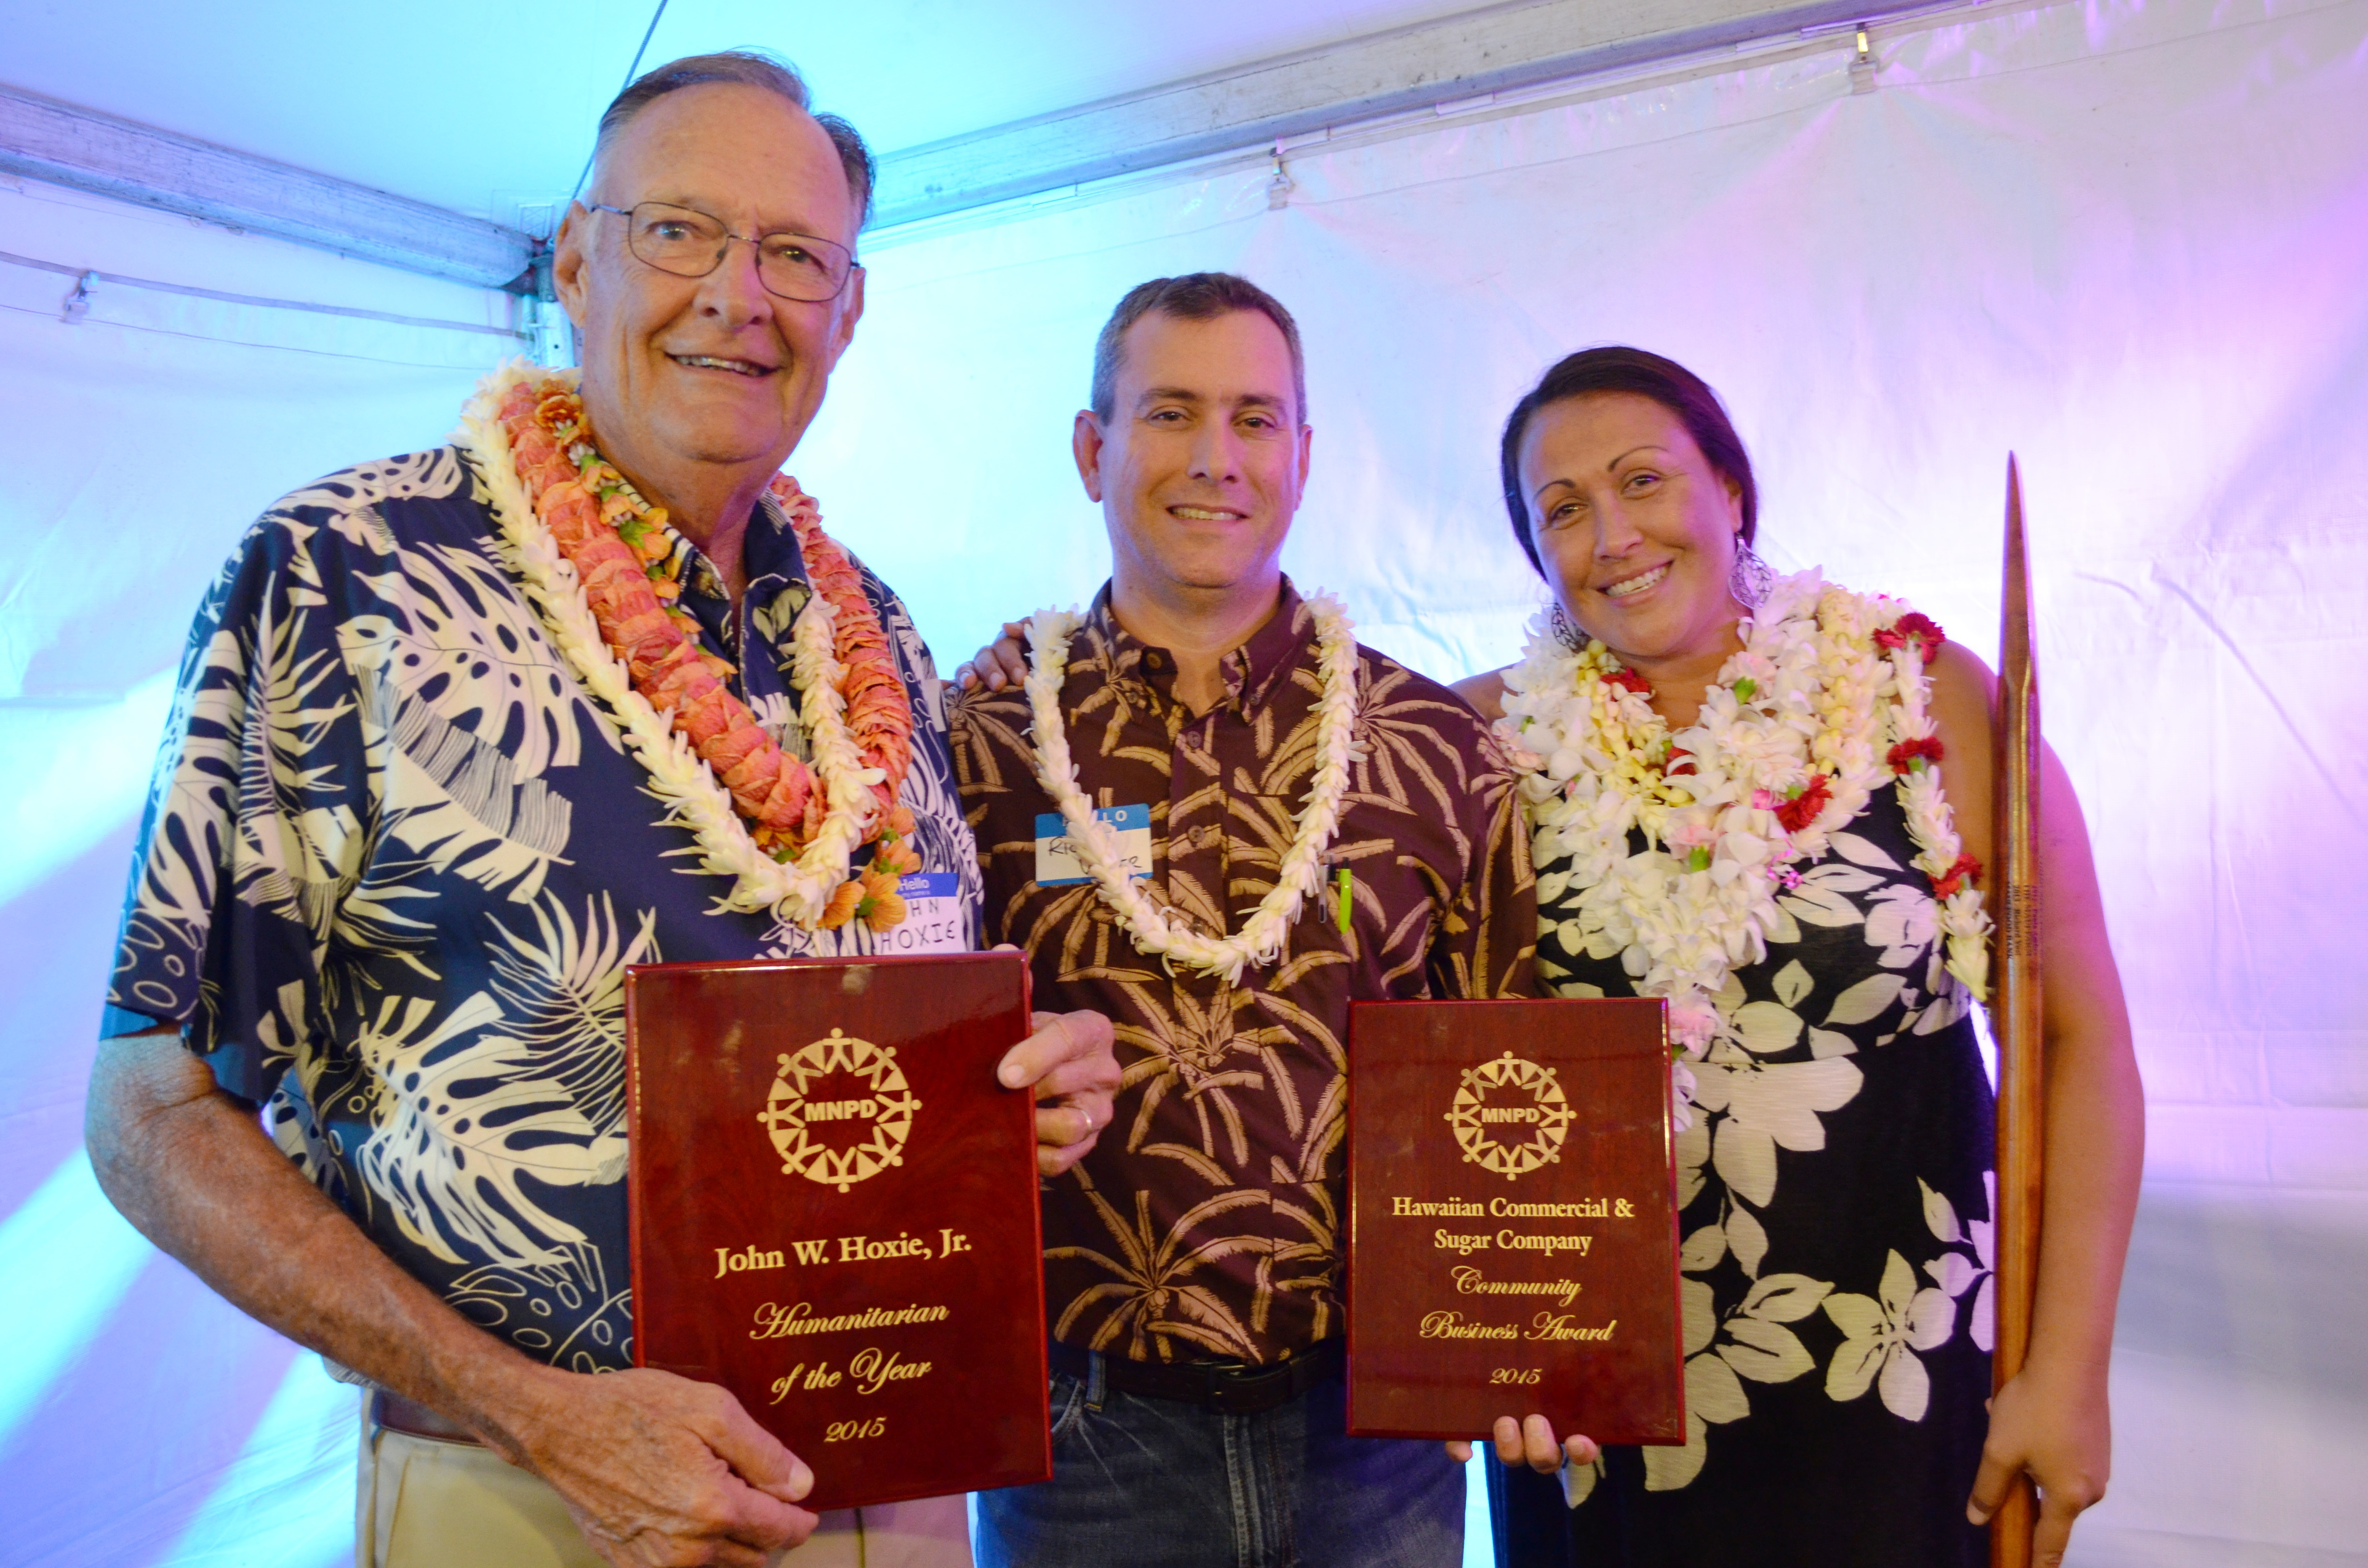 The State of Hawai'i Department of Human Services, Division of Vocational Rehab, named HC&S Outstanding Employer of the Year in Maui County. HC&S photo.